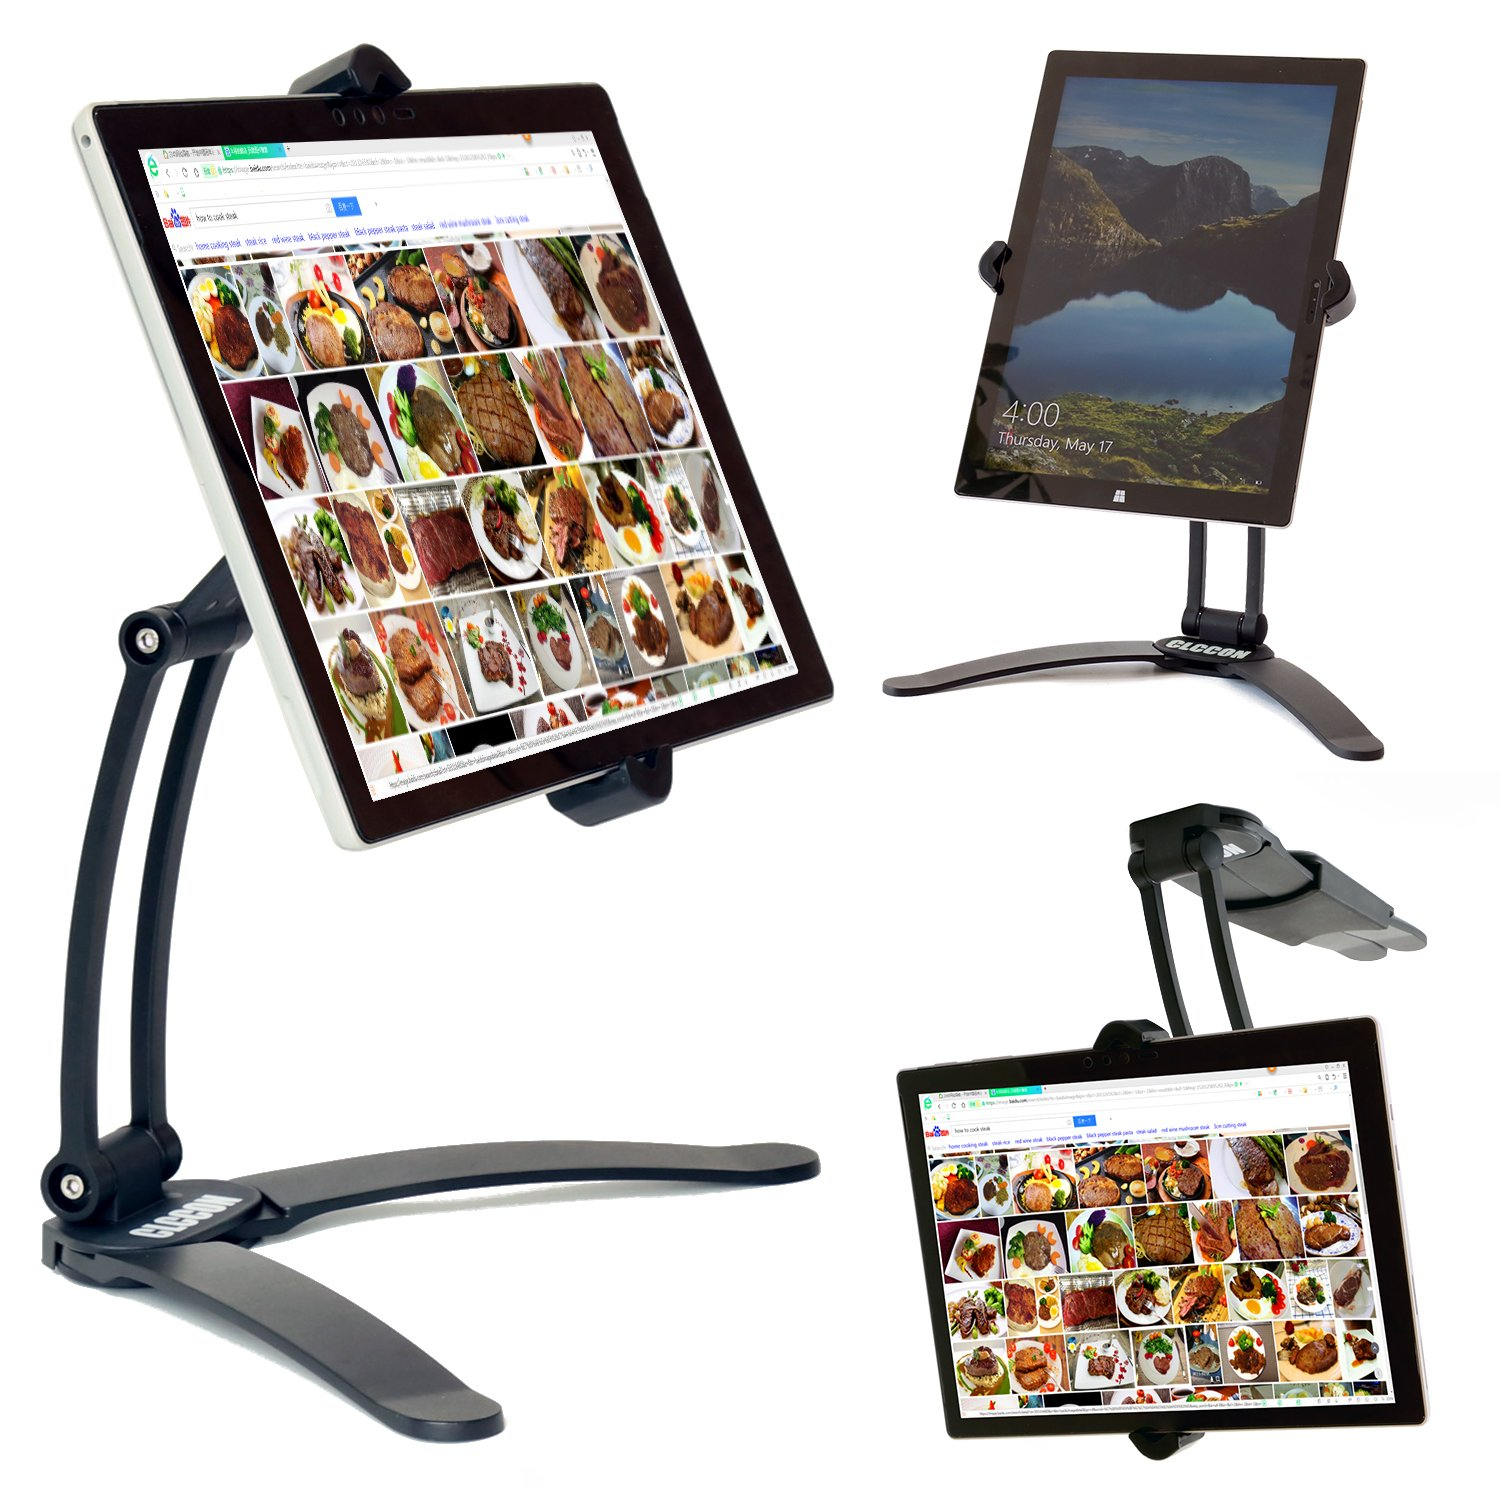 Tablet iPad Holder/Stand Adjustable Mount Kitchen Cabinet/Desktop Countertop Mount Stand for iPad 2017 ...  sc 1 st  Amzn.promo & Tablet iPad Holder/Stand Adjustable Mount Kitchen Cabinet/Desktop ...